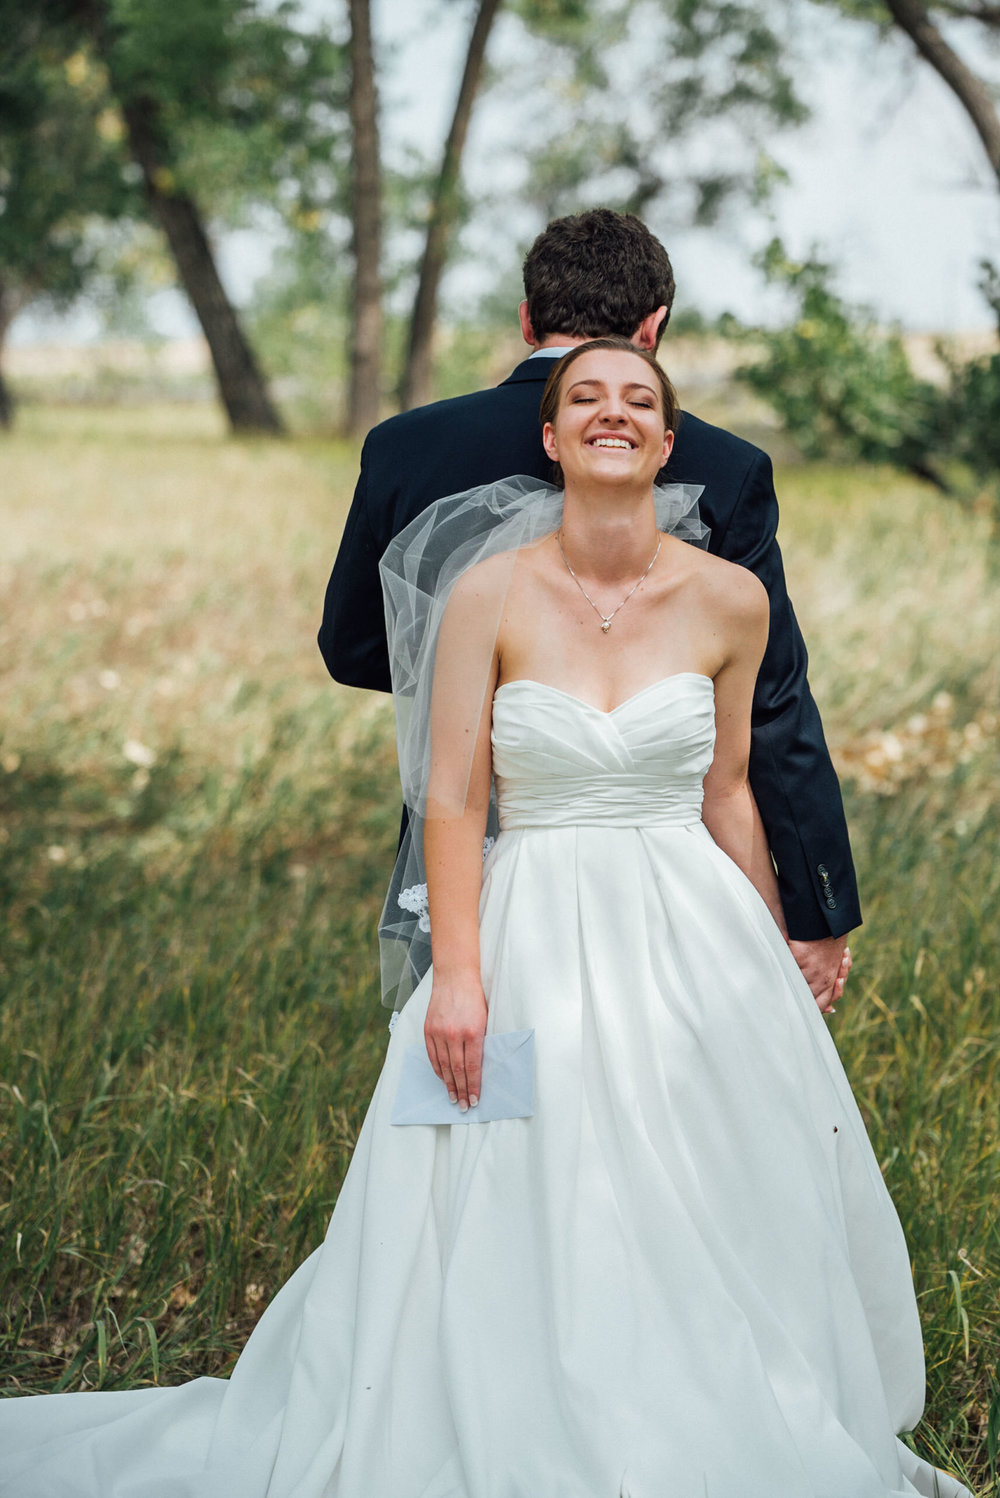 Bride laughing at Groom t beautiful Colorado wedding photographer